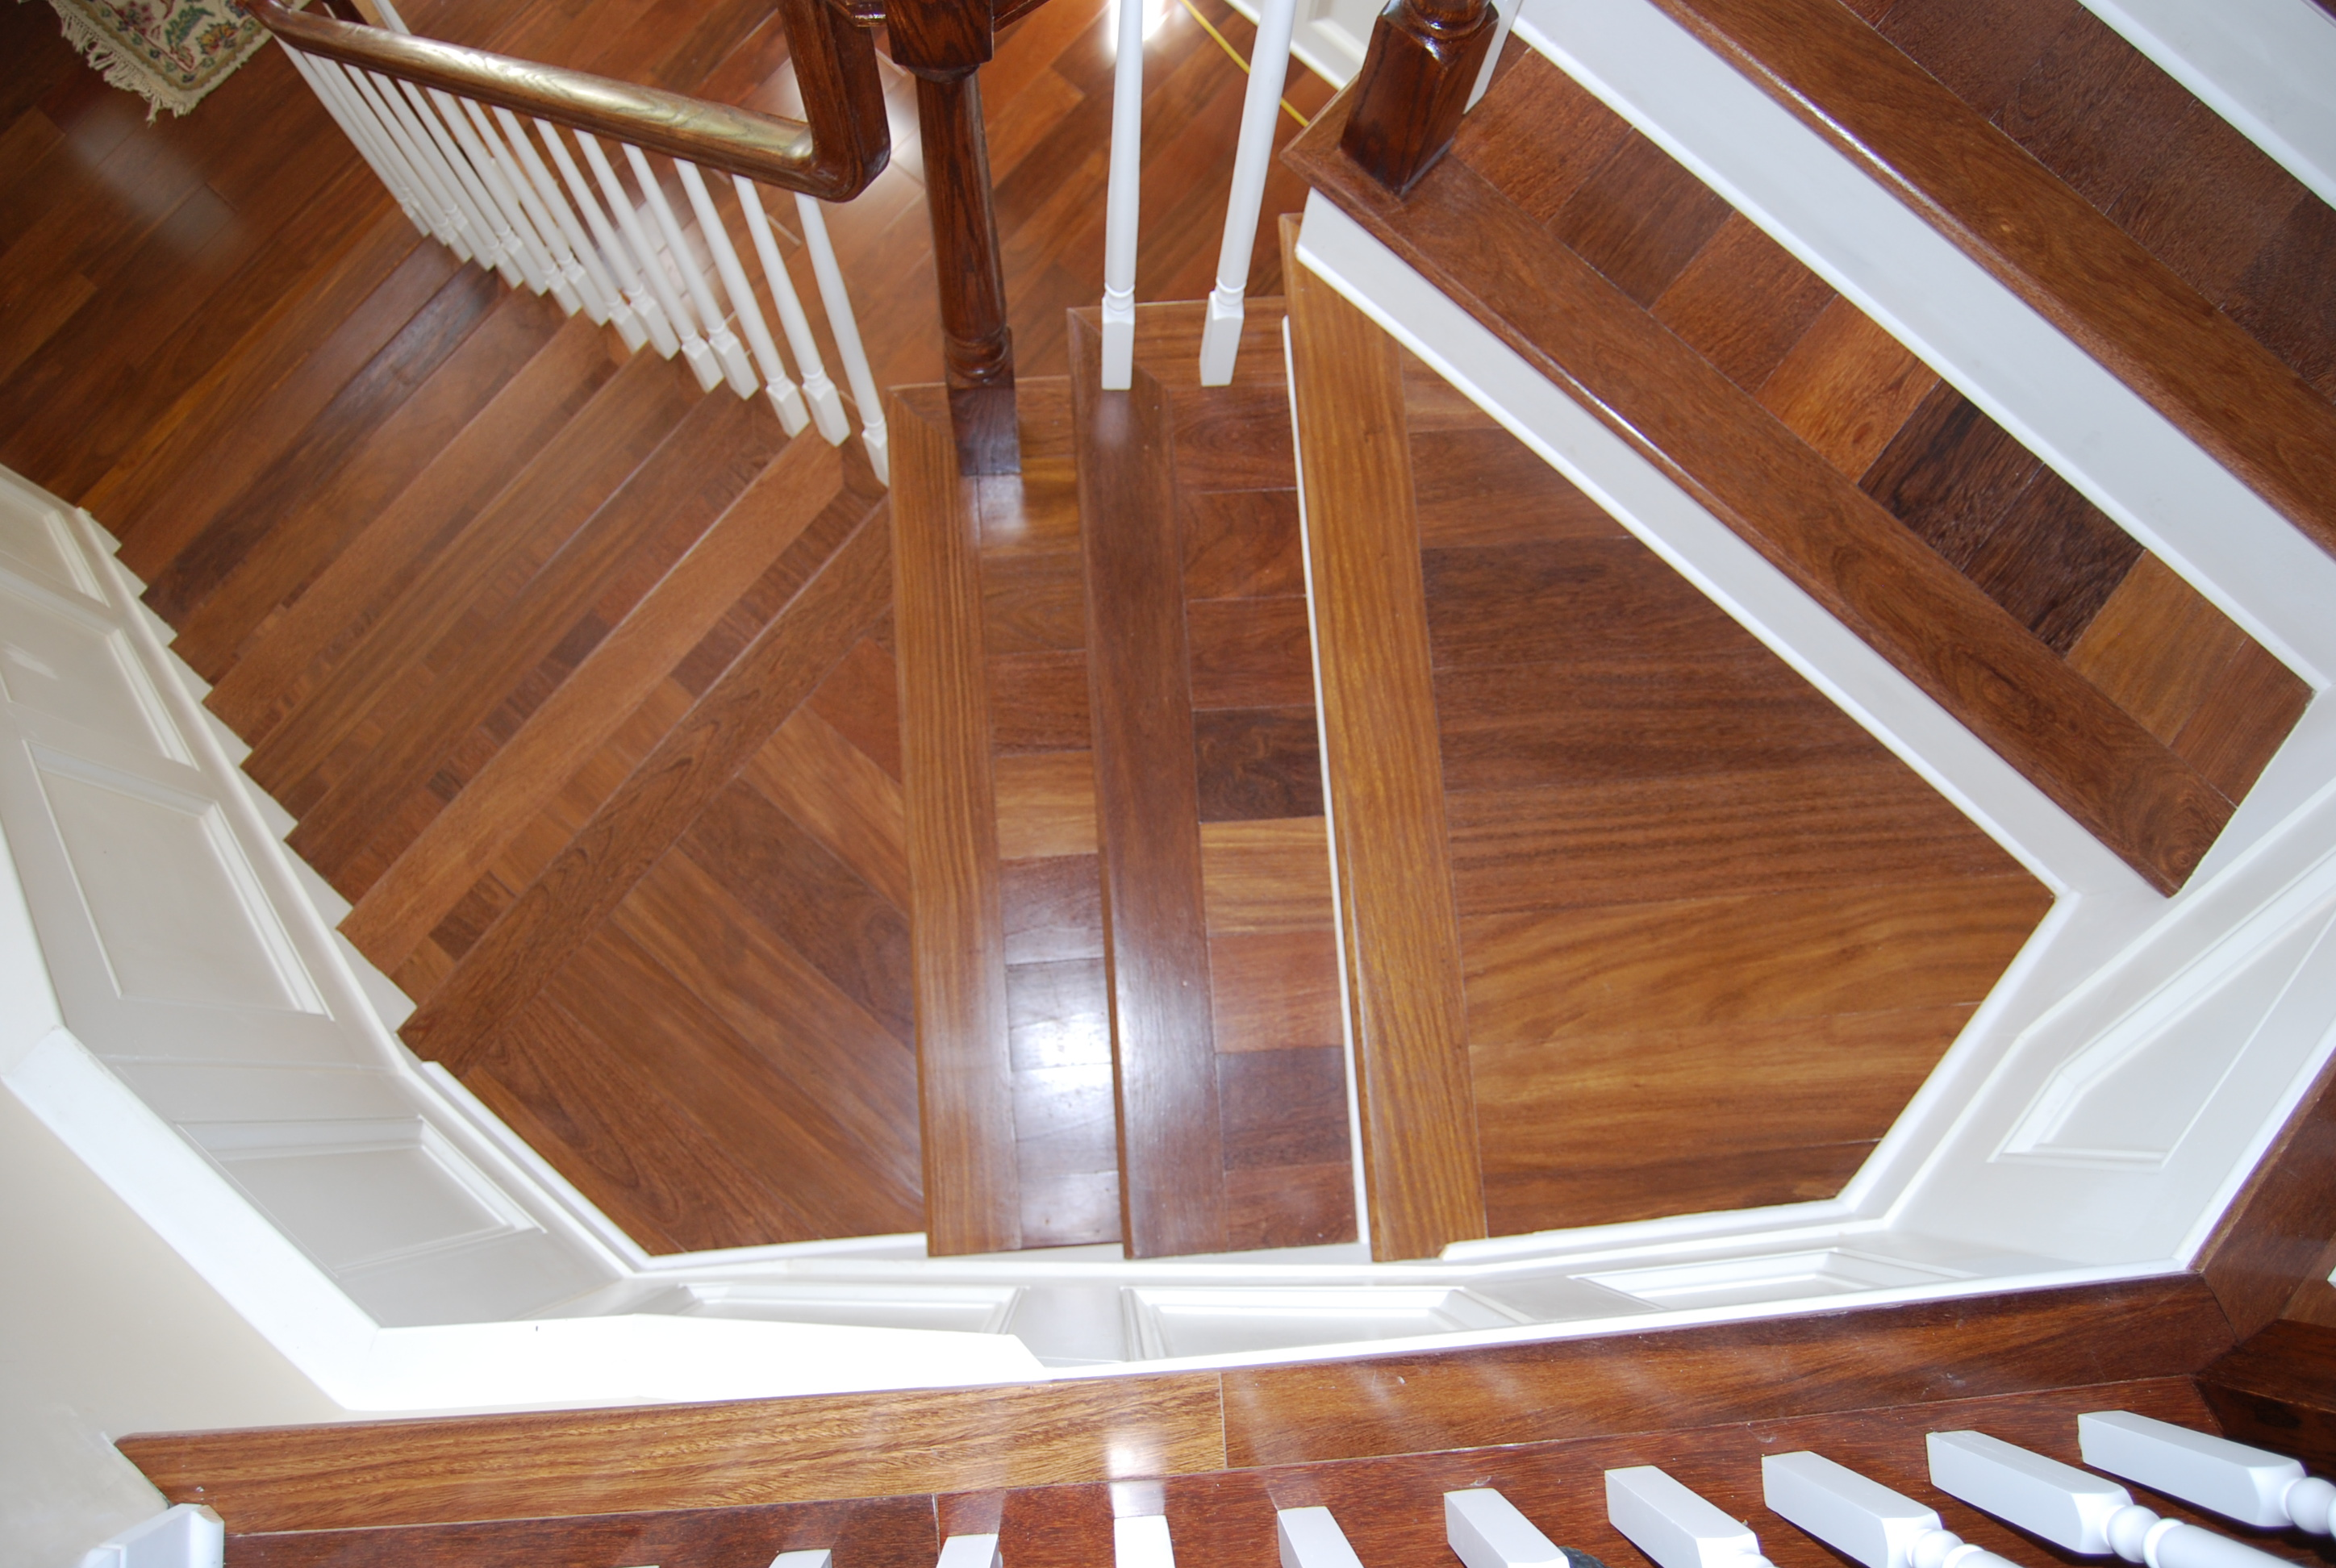 bamboo morning star bamboo cali bamboo flooring reviews